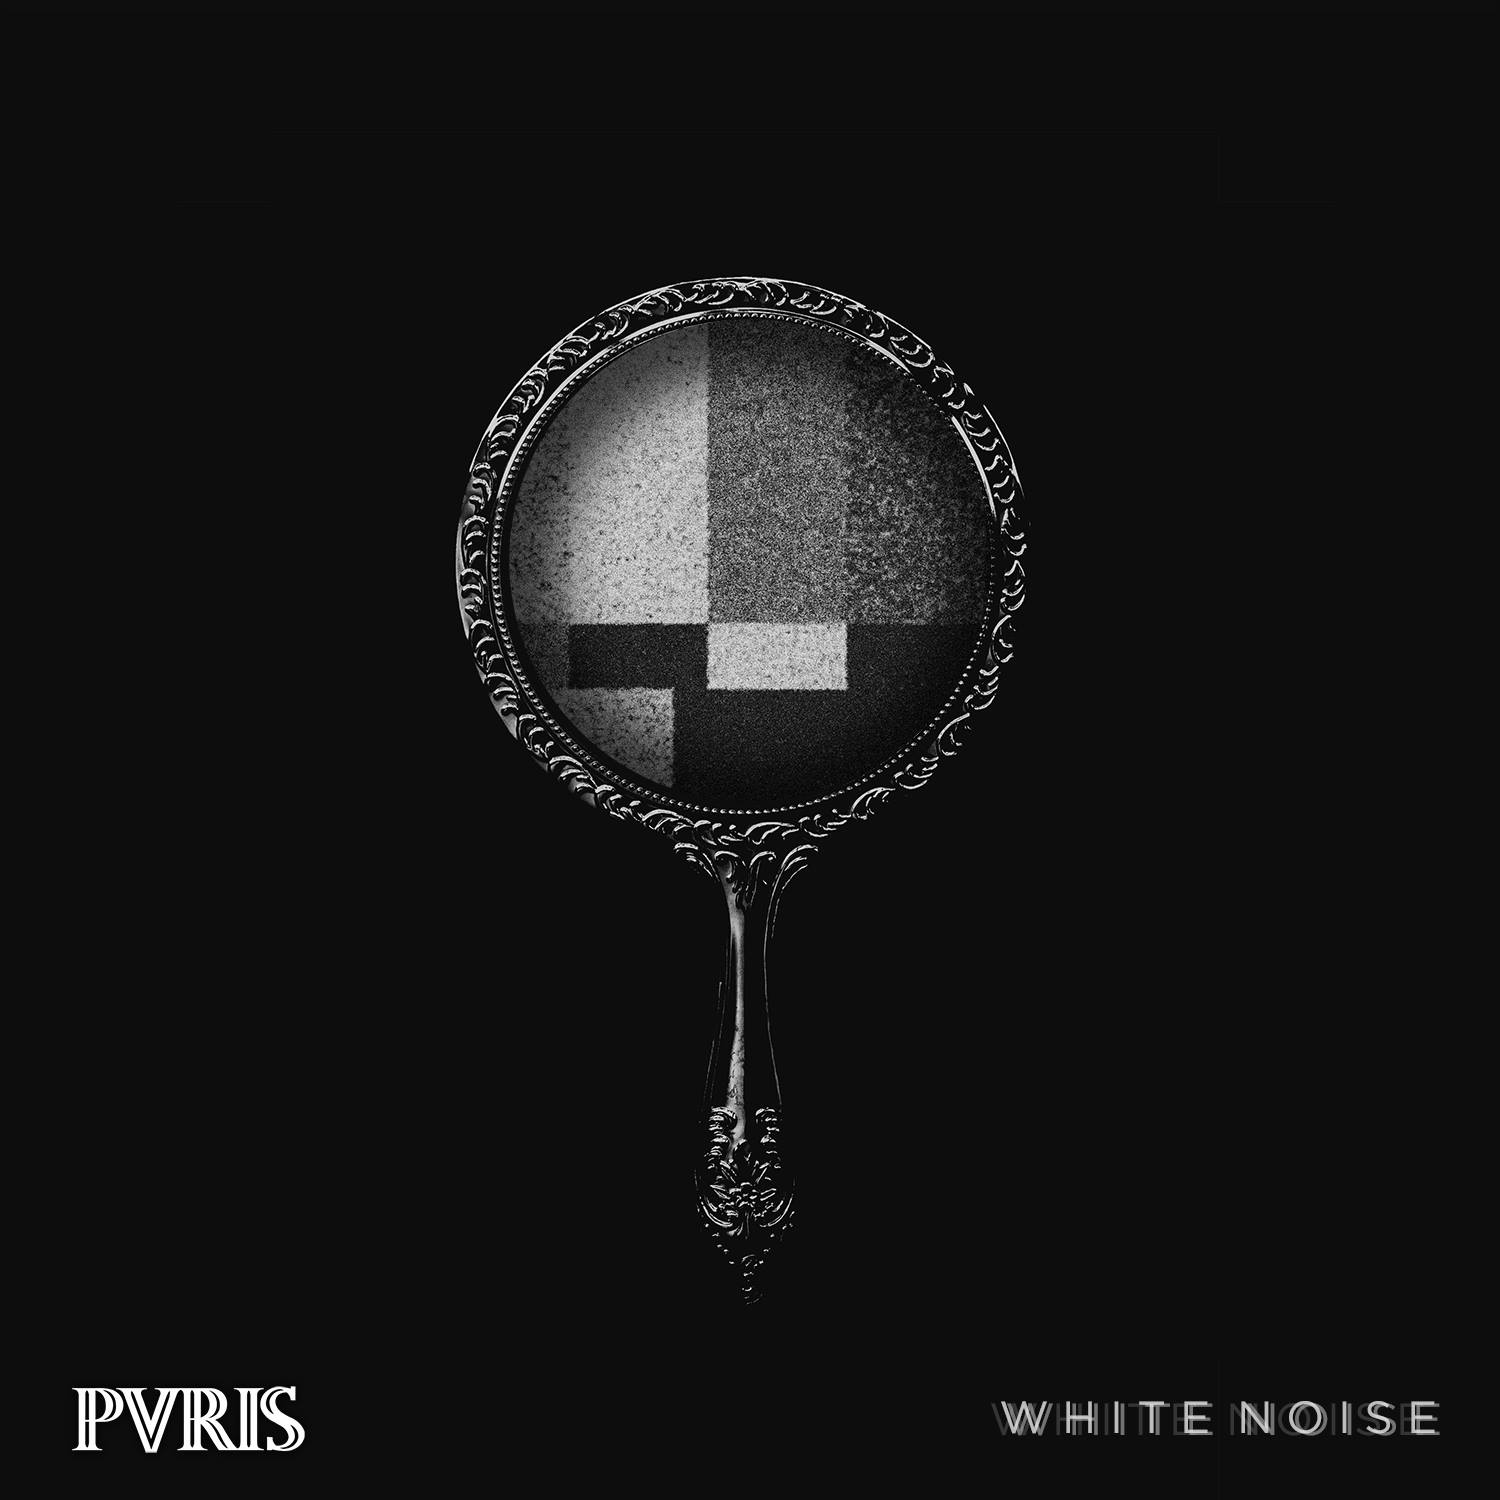 PVRIS - White Noise (2014)